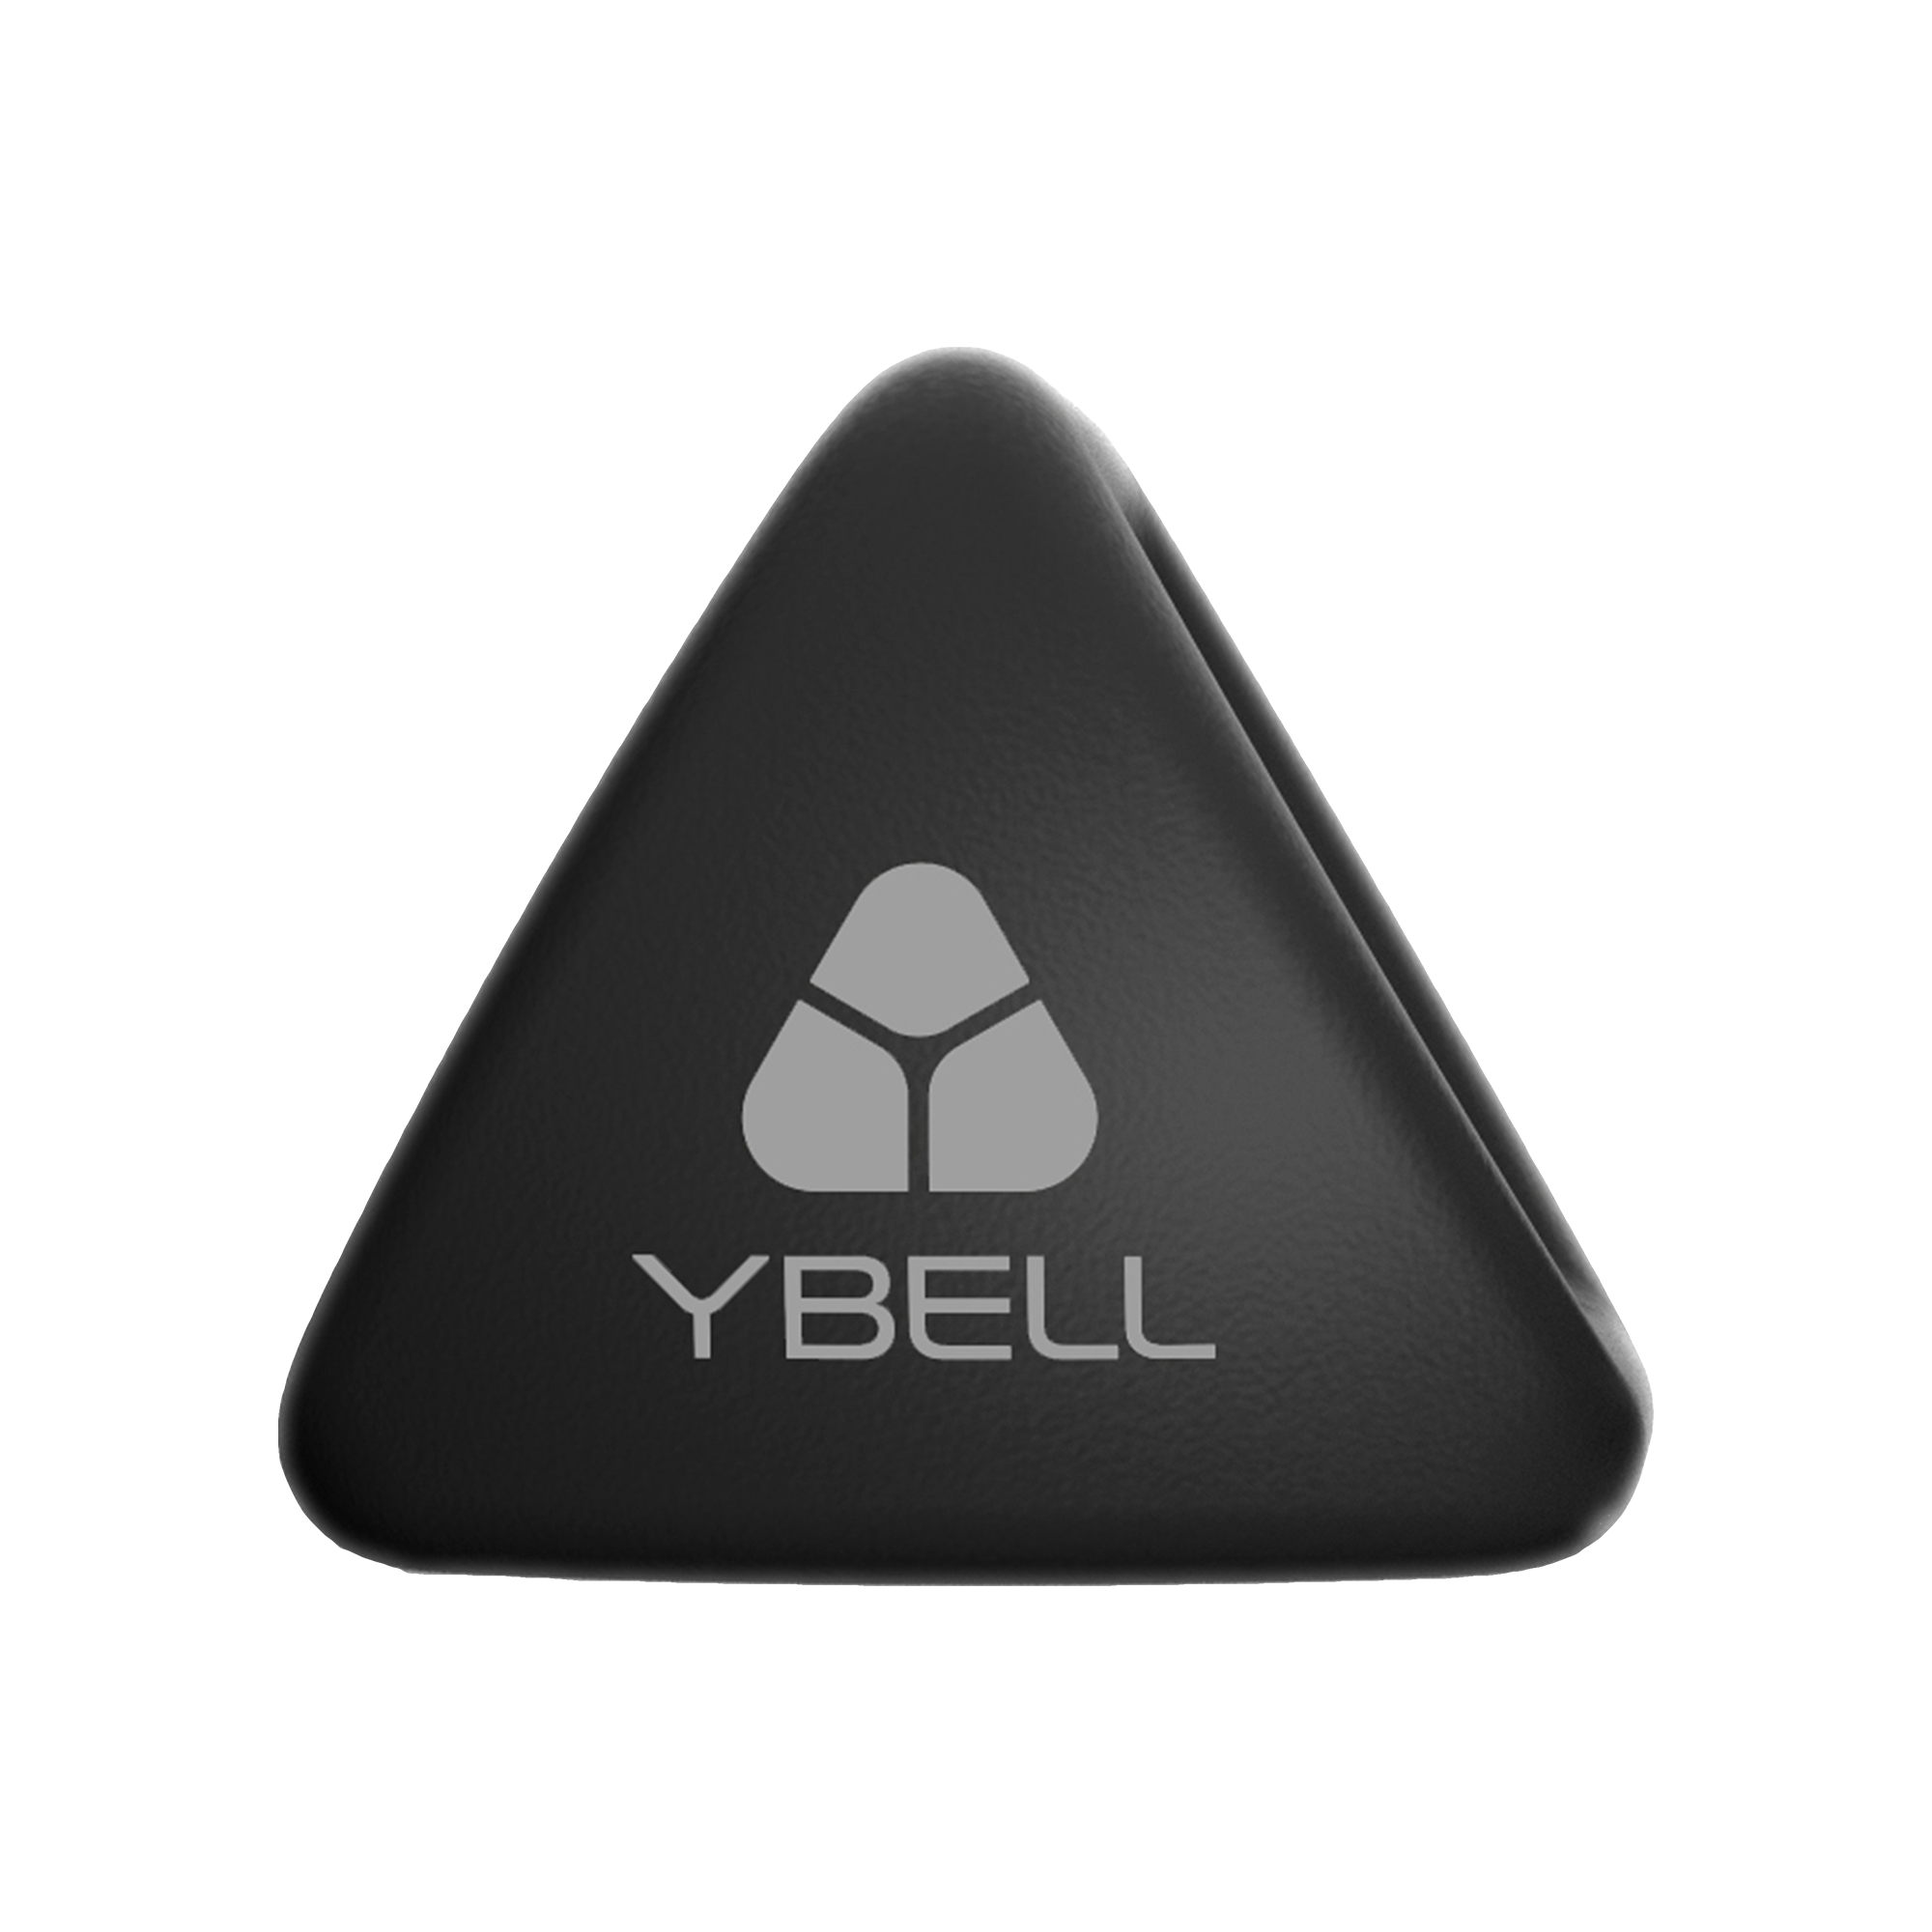 Ybell Set, Ybell Uk, Ybell Fitness, Ybell weights, Ybell combo, dumbbell, kettlebell, med ball, push up stand, Ybell exercises, ybell workout, gym equipment, home gym